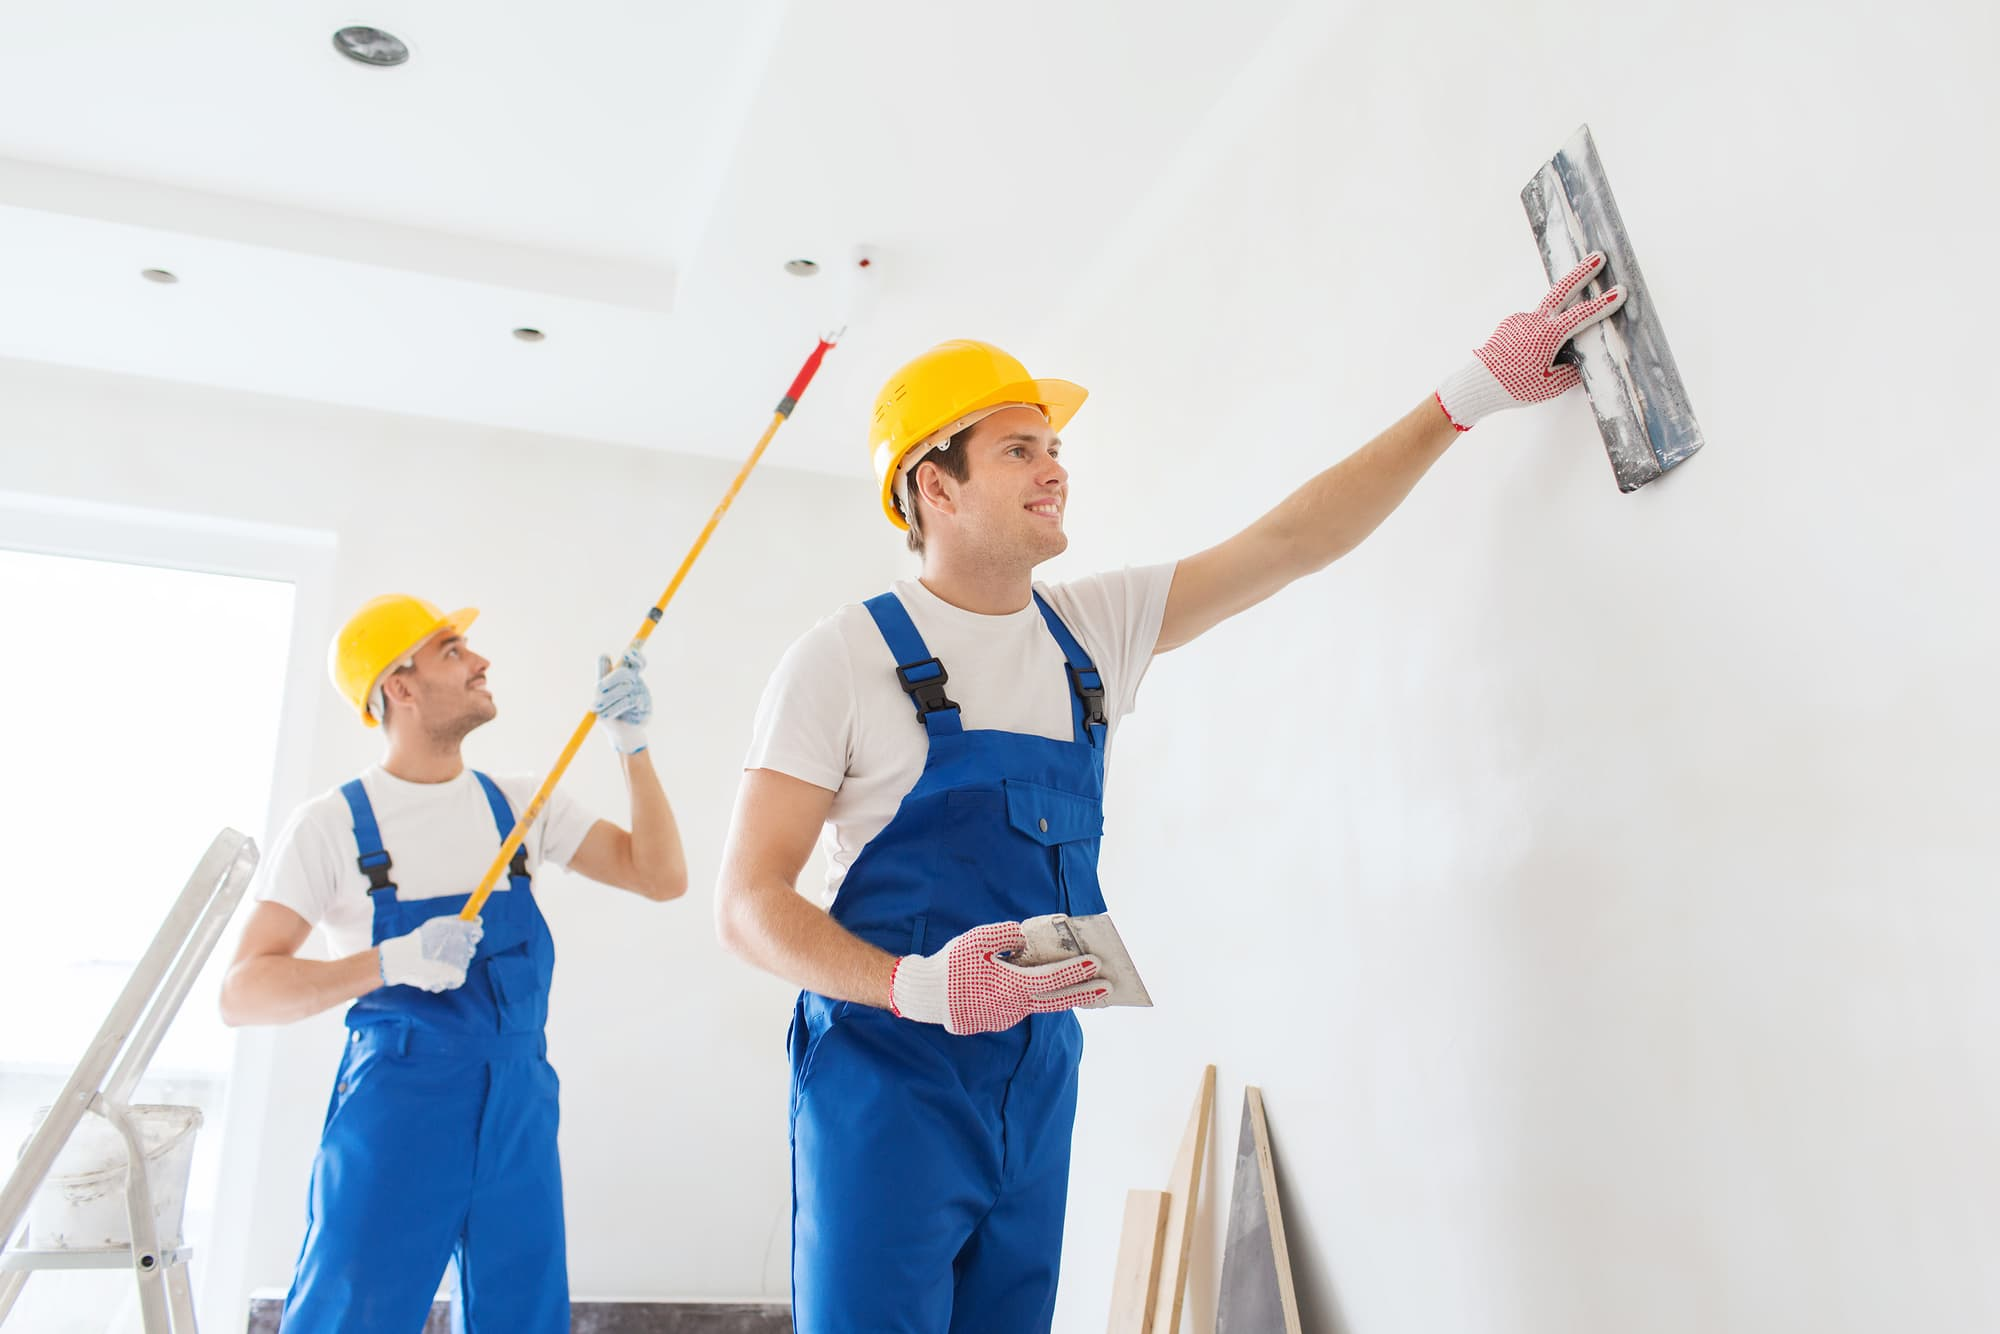 Professional Painters-League City TX Professional Painting Contractors-We offer Residential & Commercial Painting, Interior Painting, Exterior Painting, Primer Painting, Industrial Painting, Professional Painters, Institutional Painters, and more.